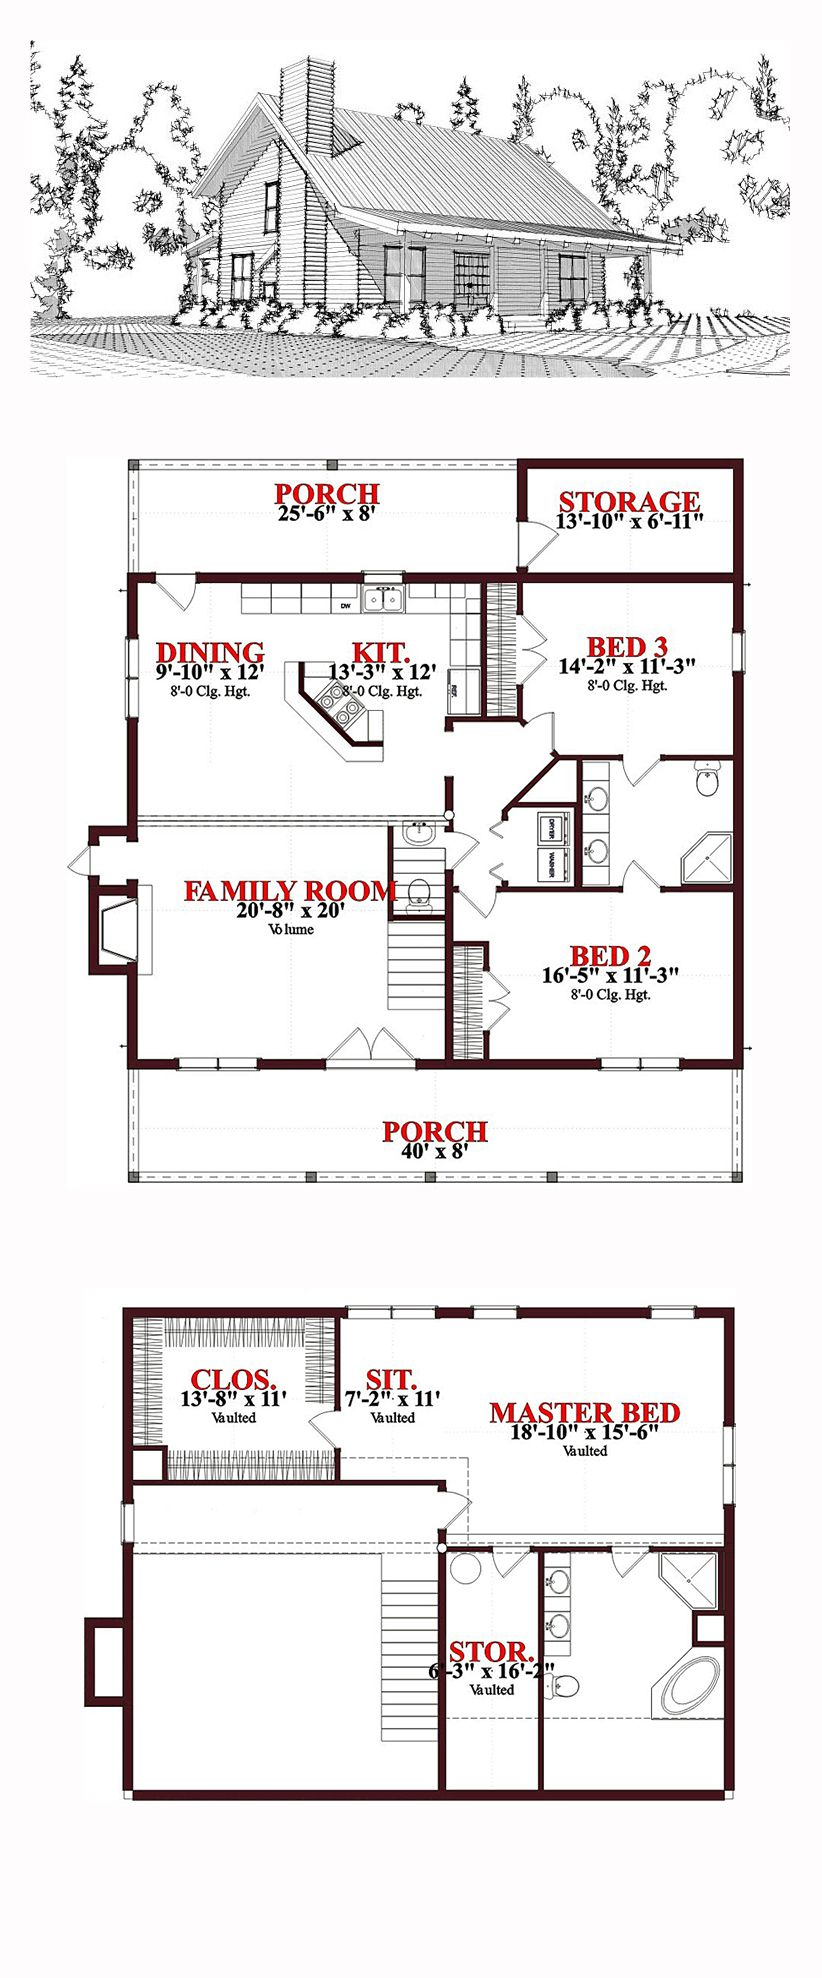 Cabin country log house plan 78649 saltbox houses for Salt box house plans